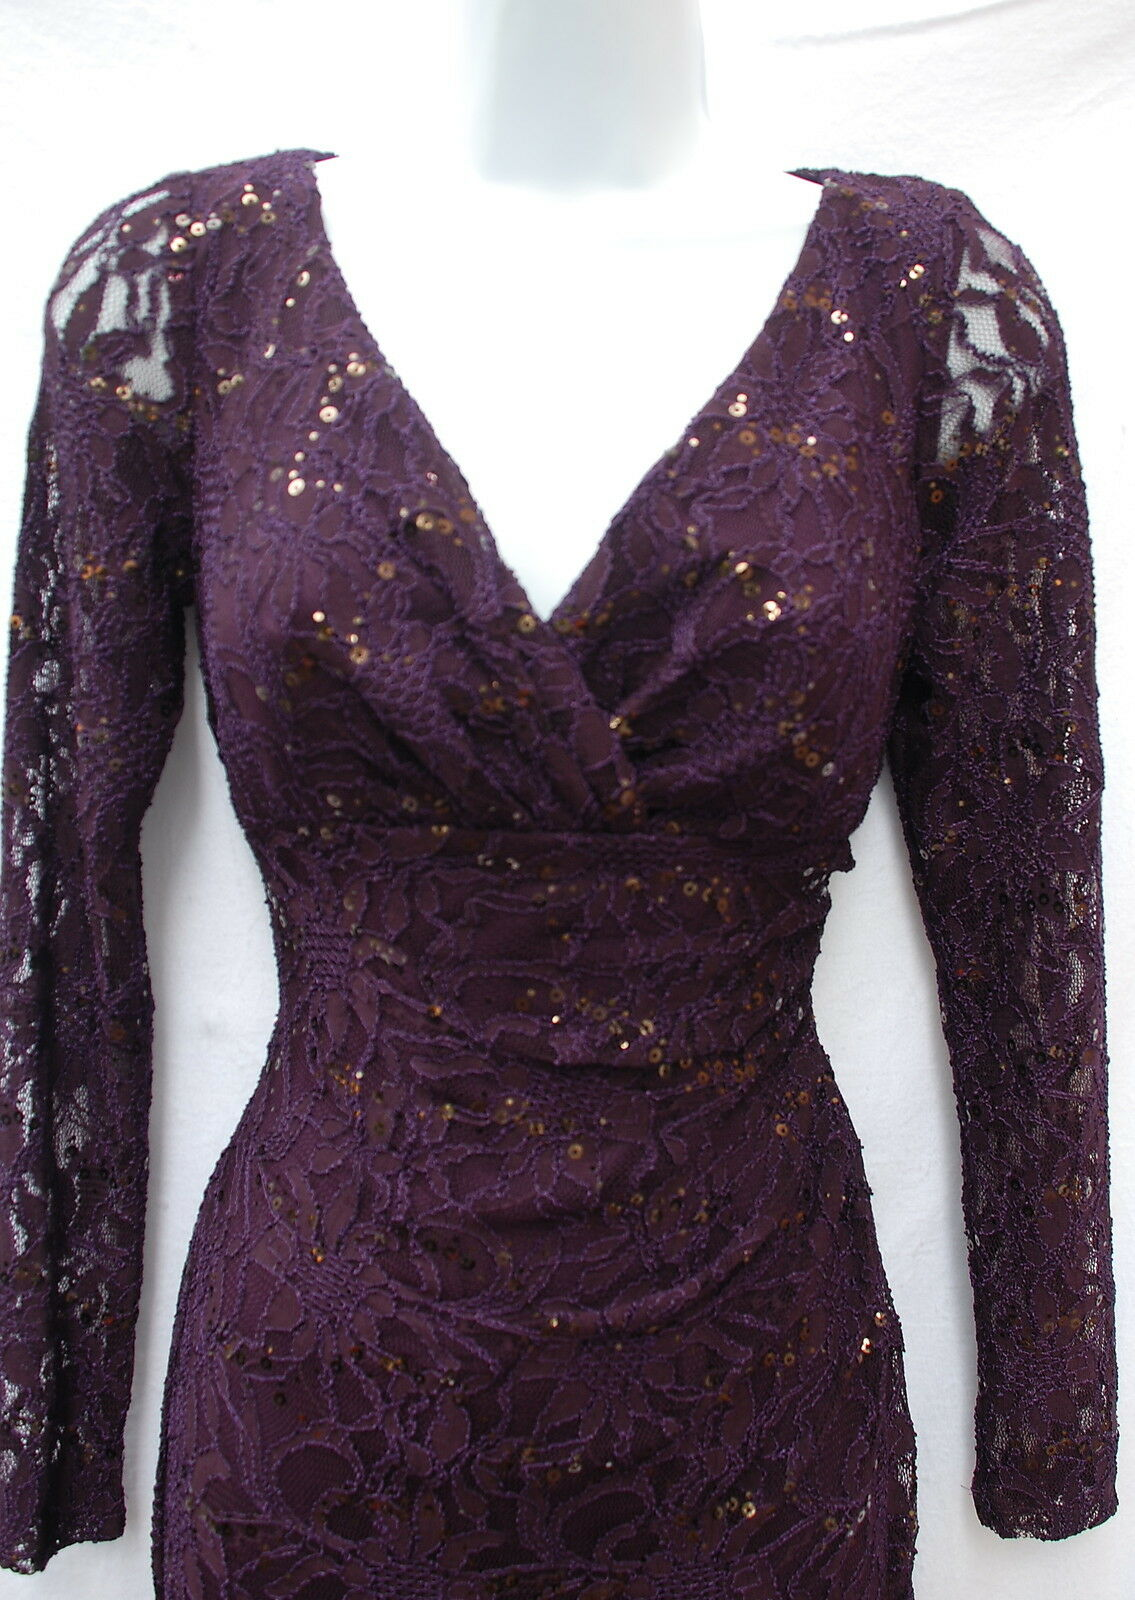 Ralph Lauren elegant evening lace dress gown gown gown 3 4 sleeves event occasion sz 2 c3efad